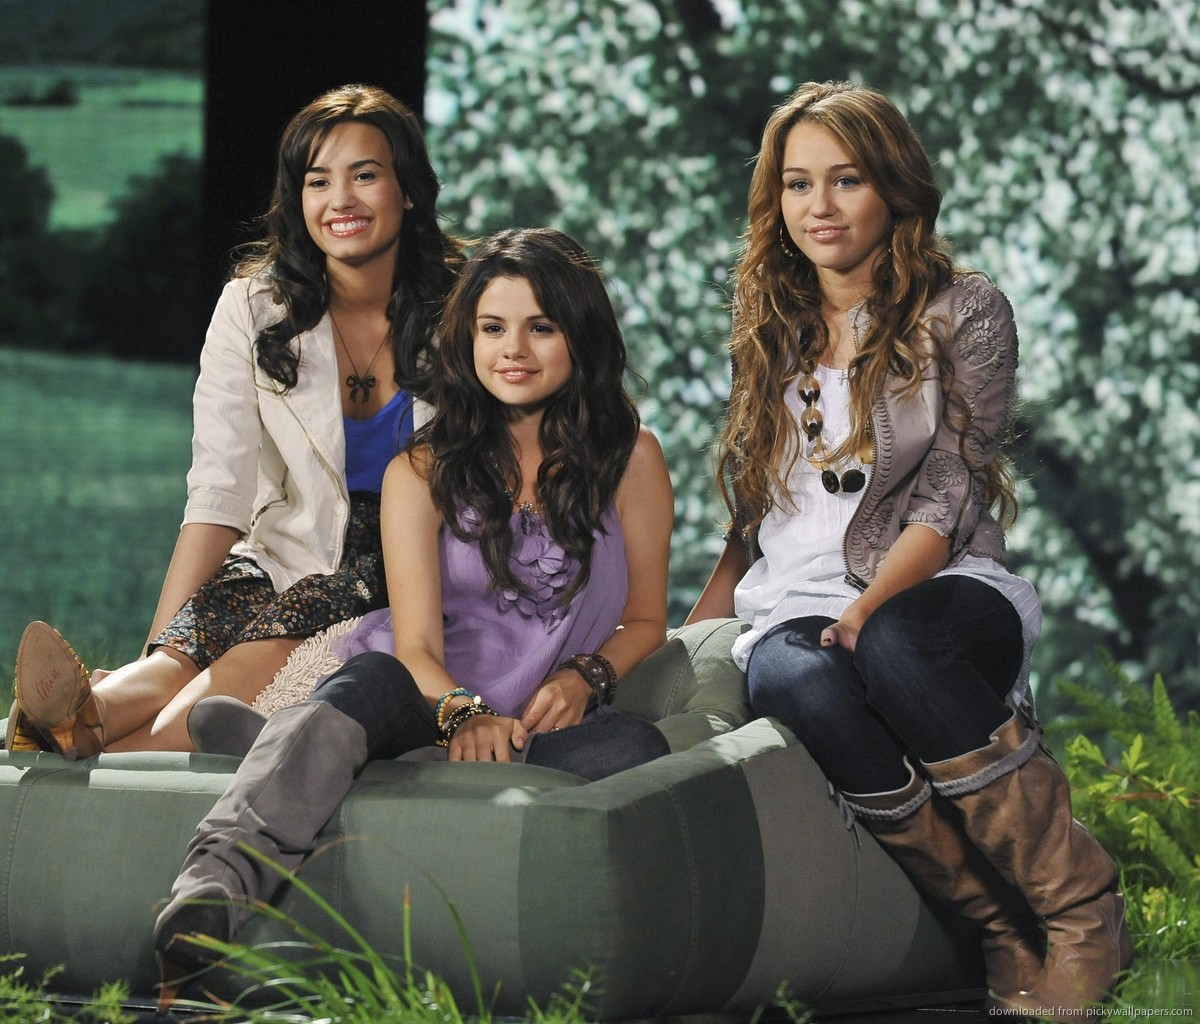 Miley cyrus and demi lovato dating